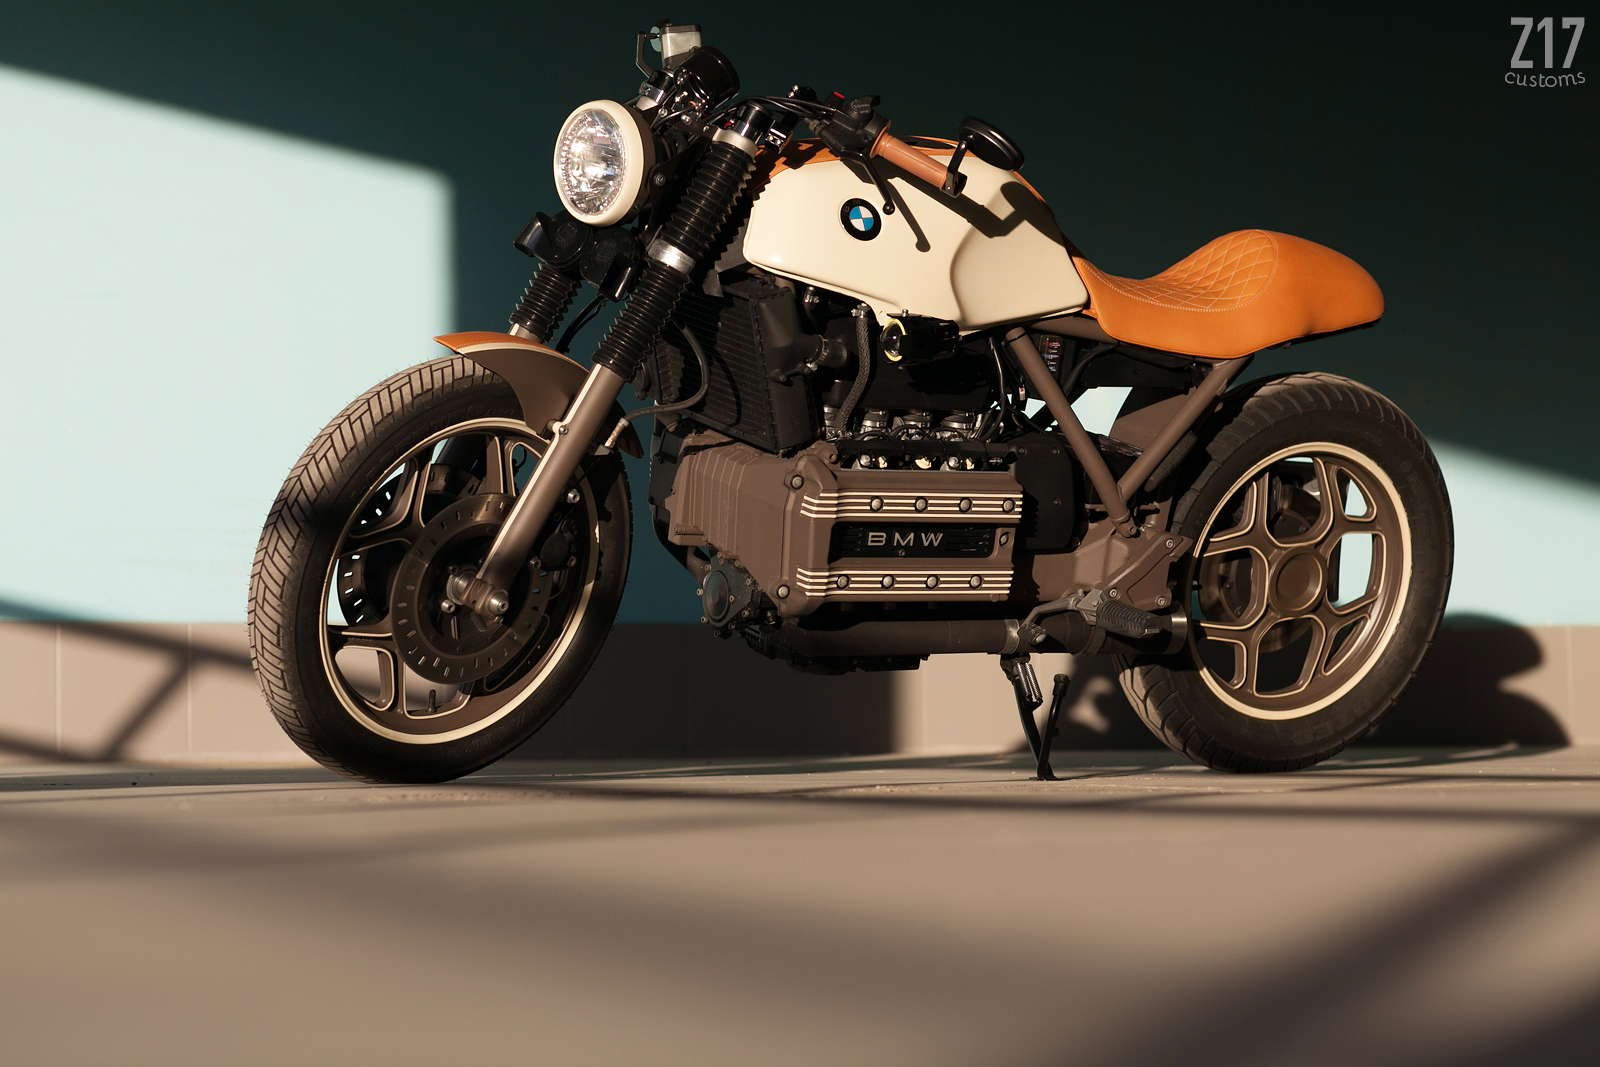 Favori BMW K100 Cafe Racer by Z17 Customs – BikeBound GM82